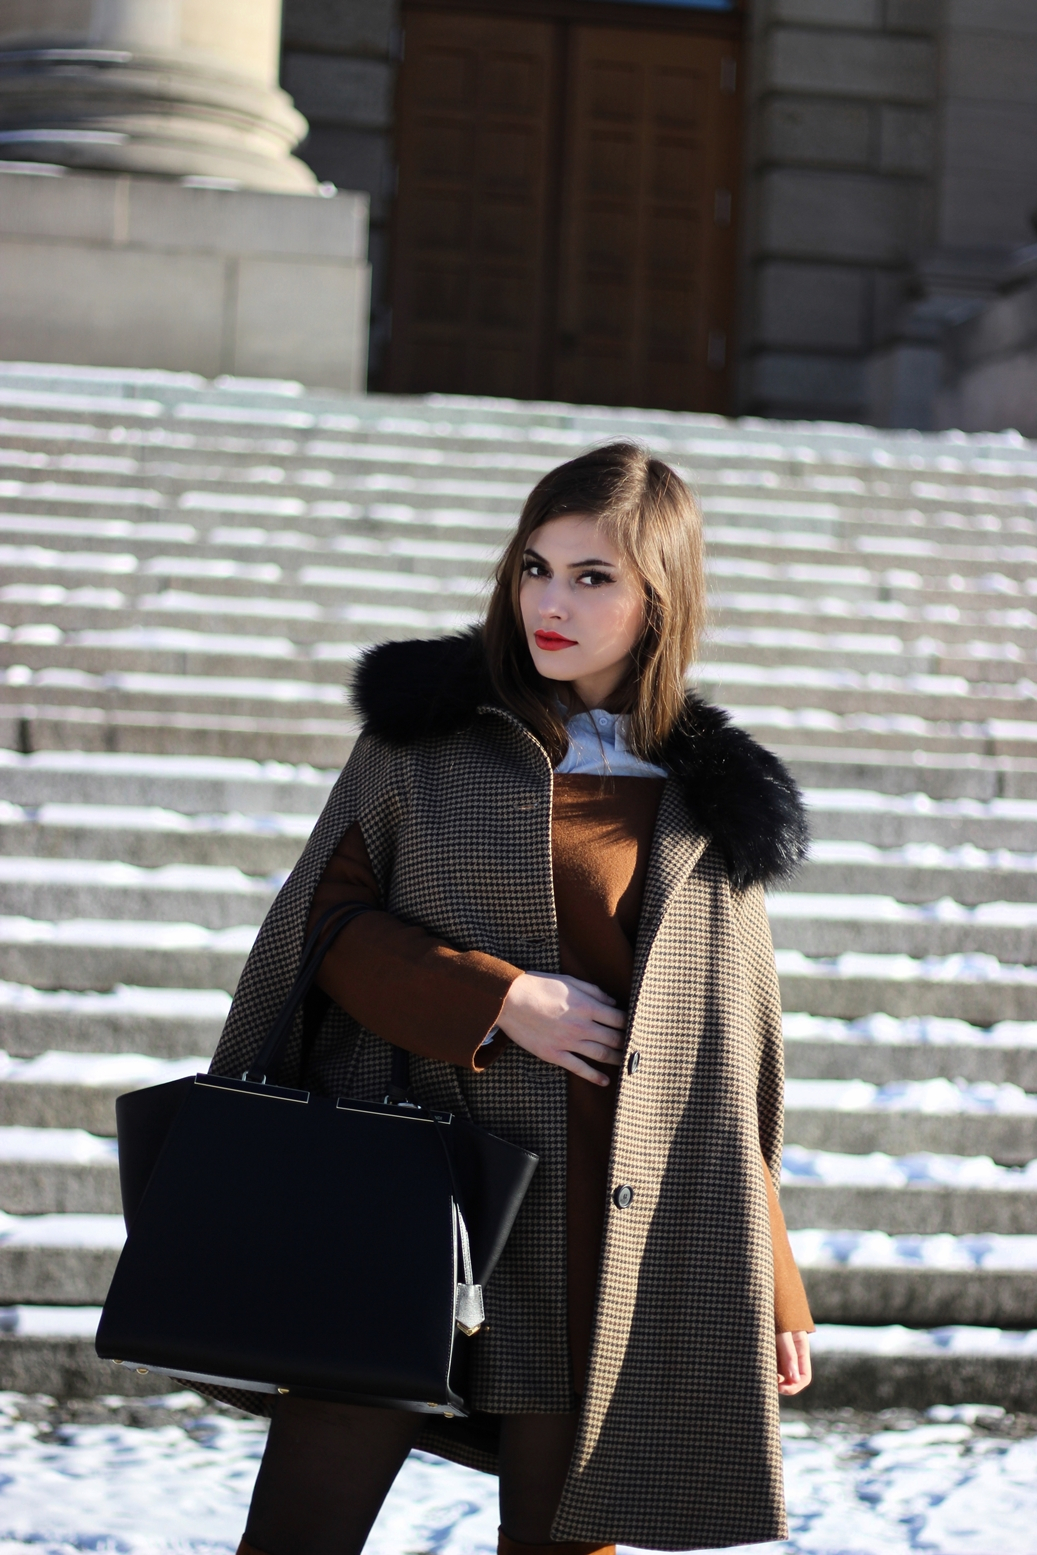 zara-cape-fendi-bag-3jours-blog-germany-fashion-outfit